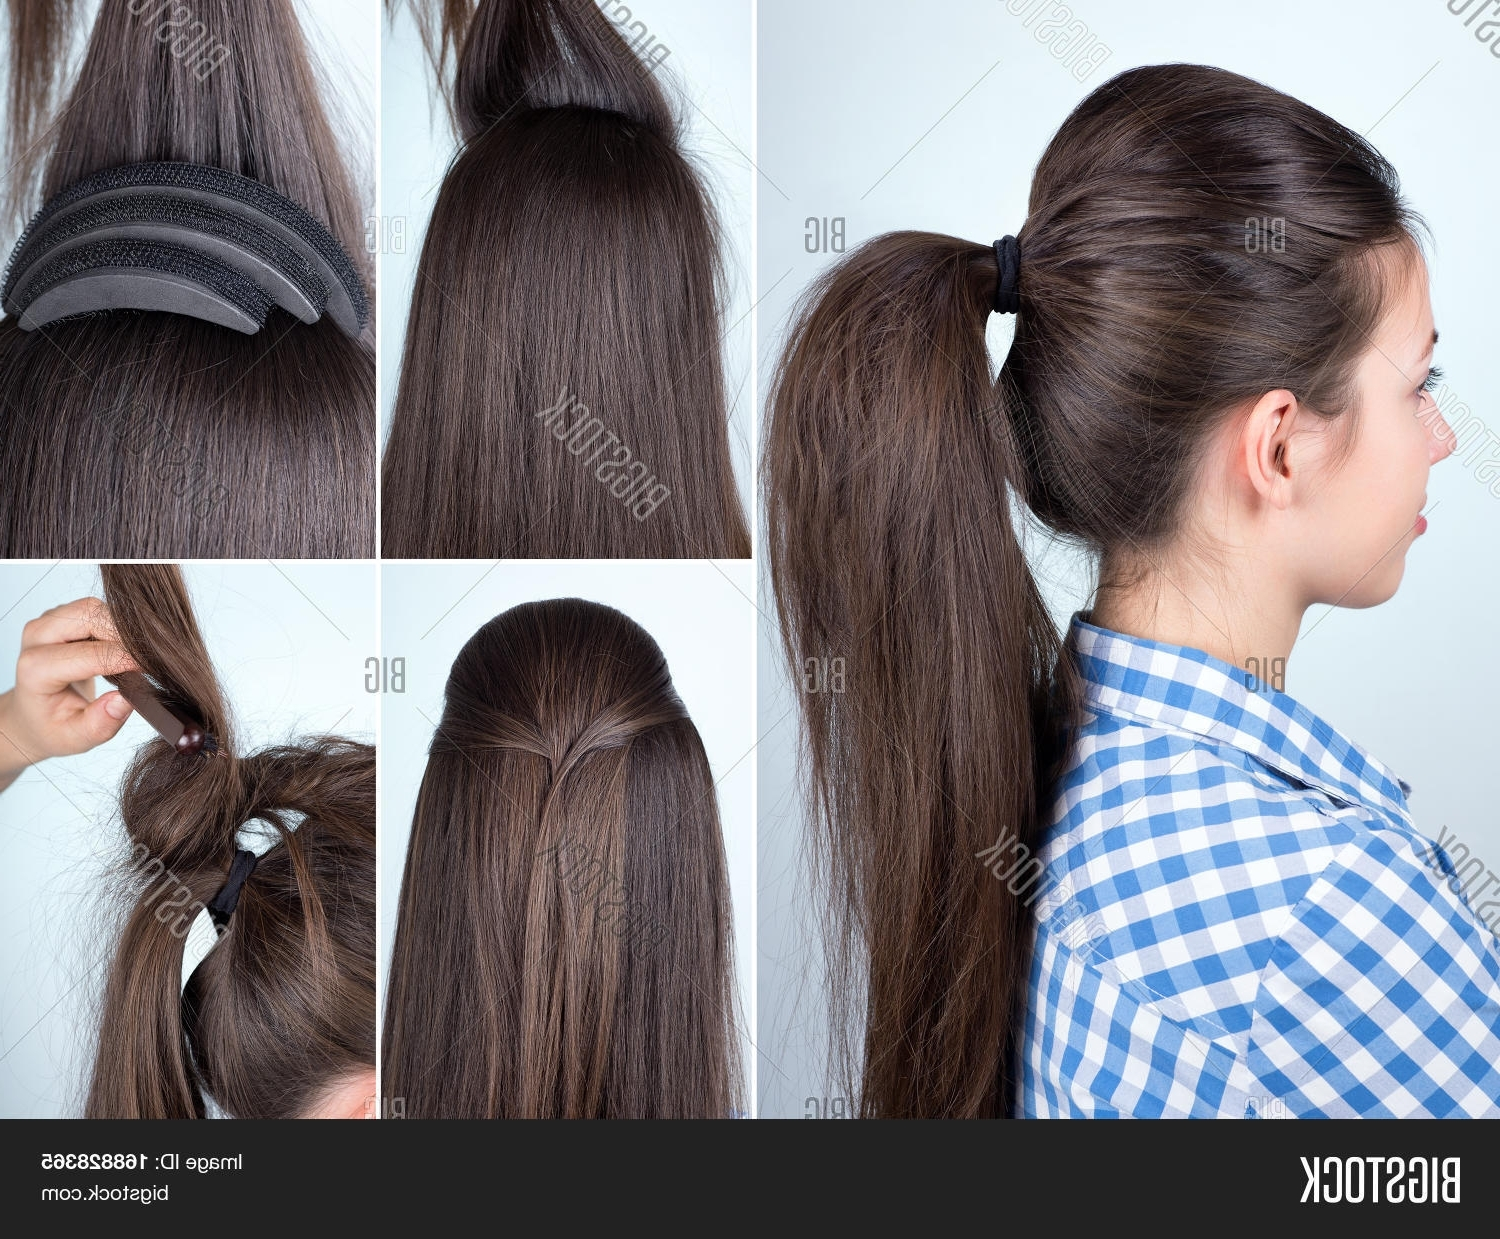 Bigstock Intended For Fashionable Bouffant Ponytail Hairstyles (View 6 of 20)